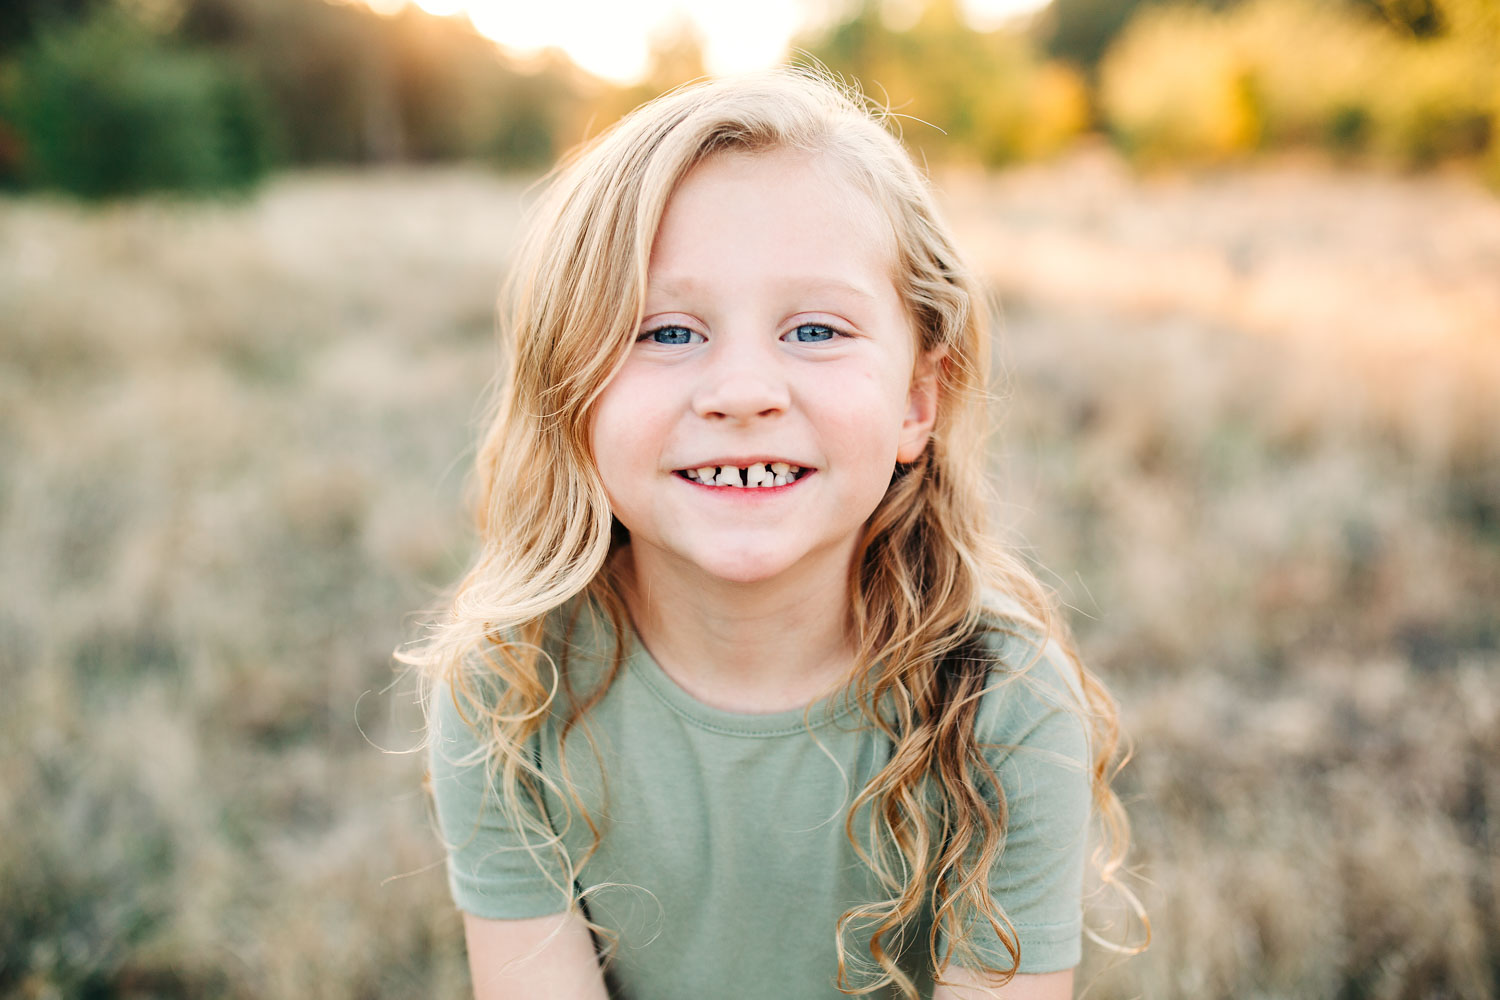 A girl smiles for the camera as she is bathed in beautiful backlit light during golden hour in Roseville, California during her family's photo session with Amy Wright Photography.